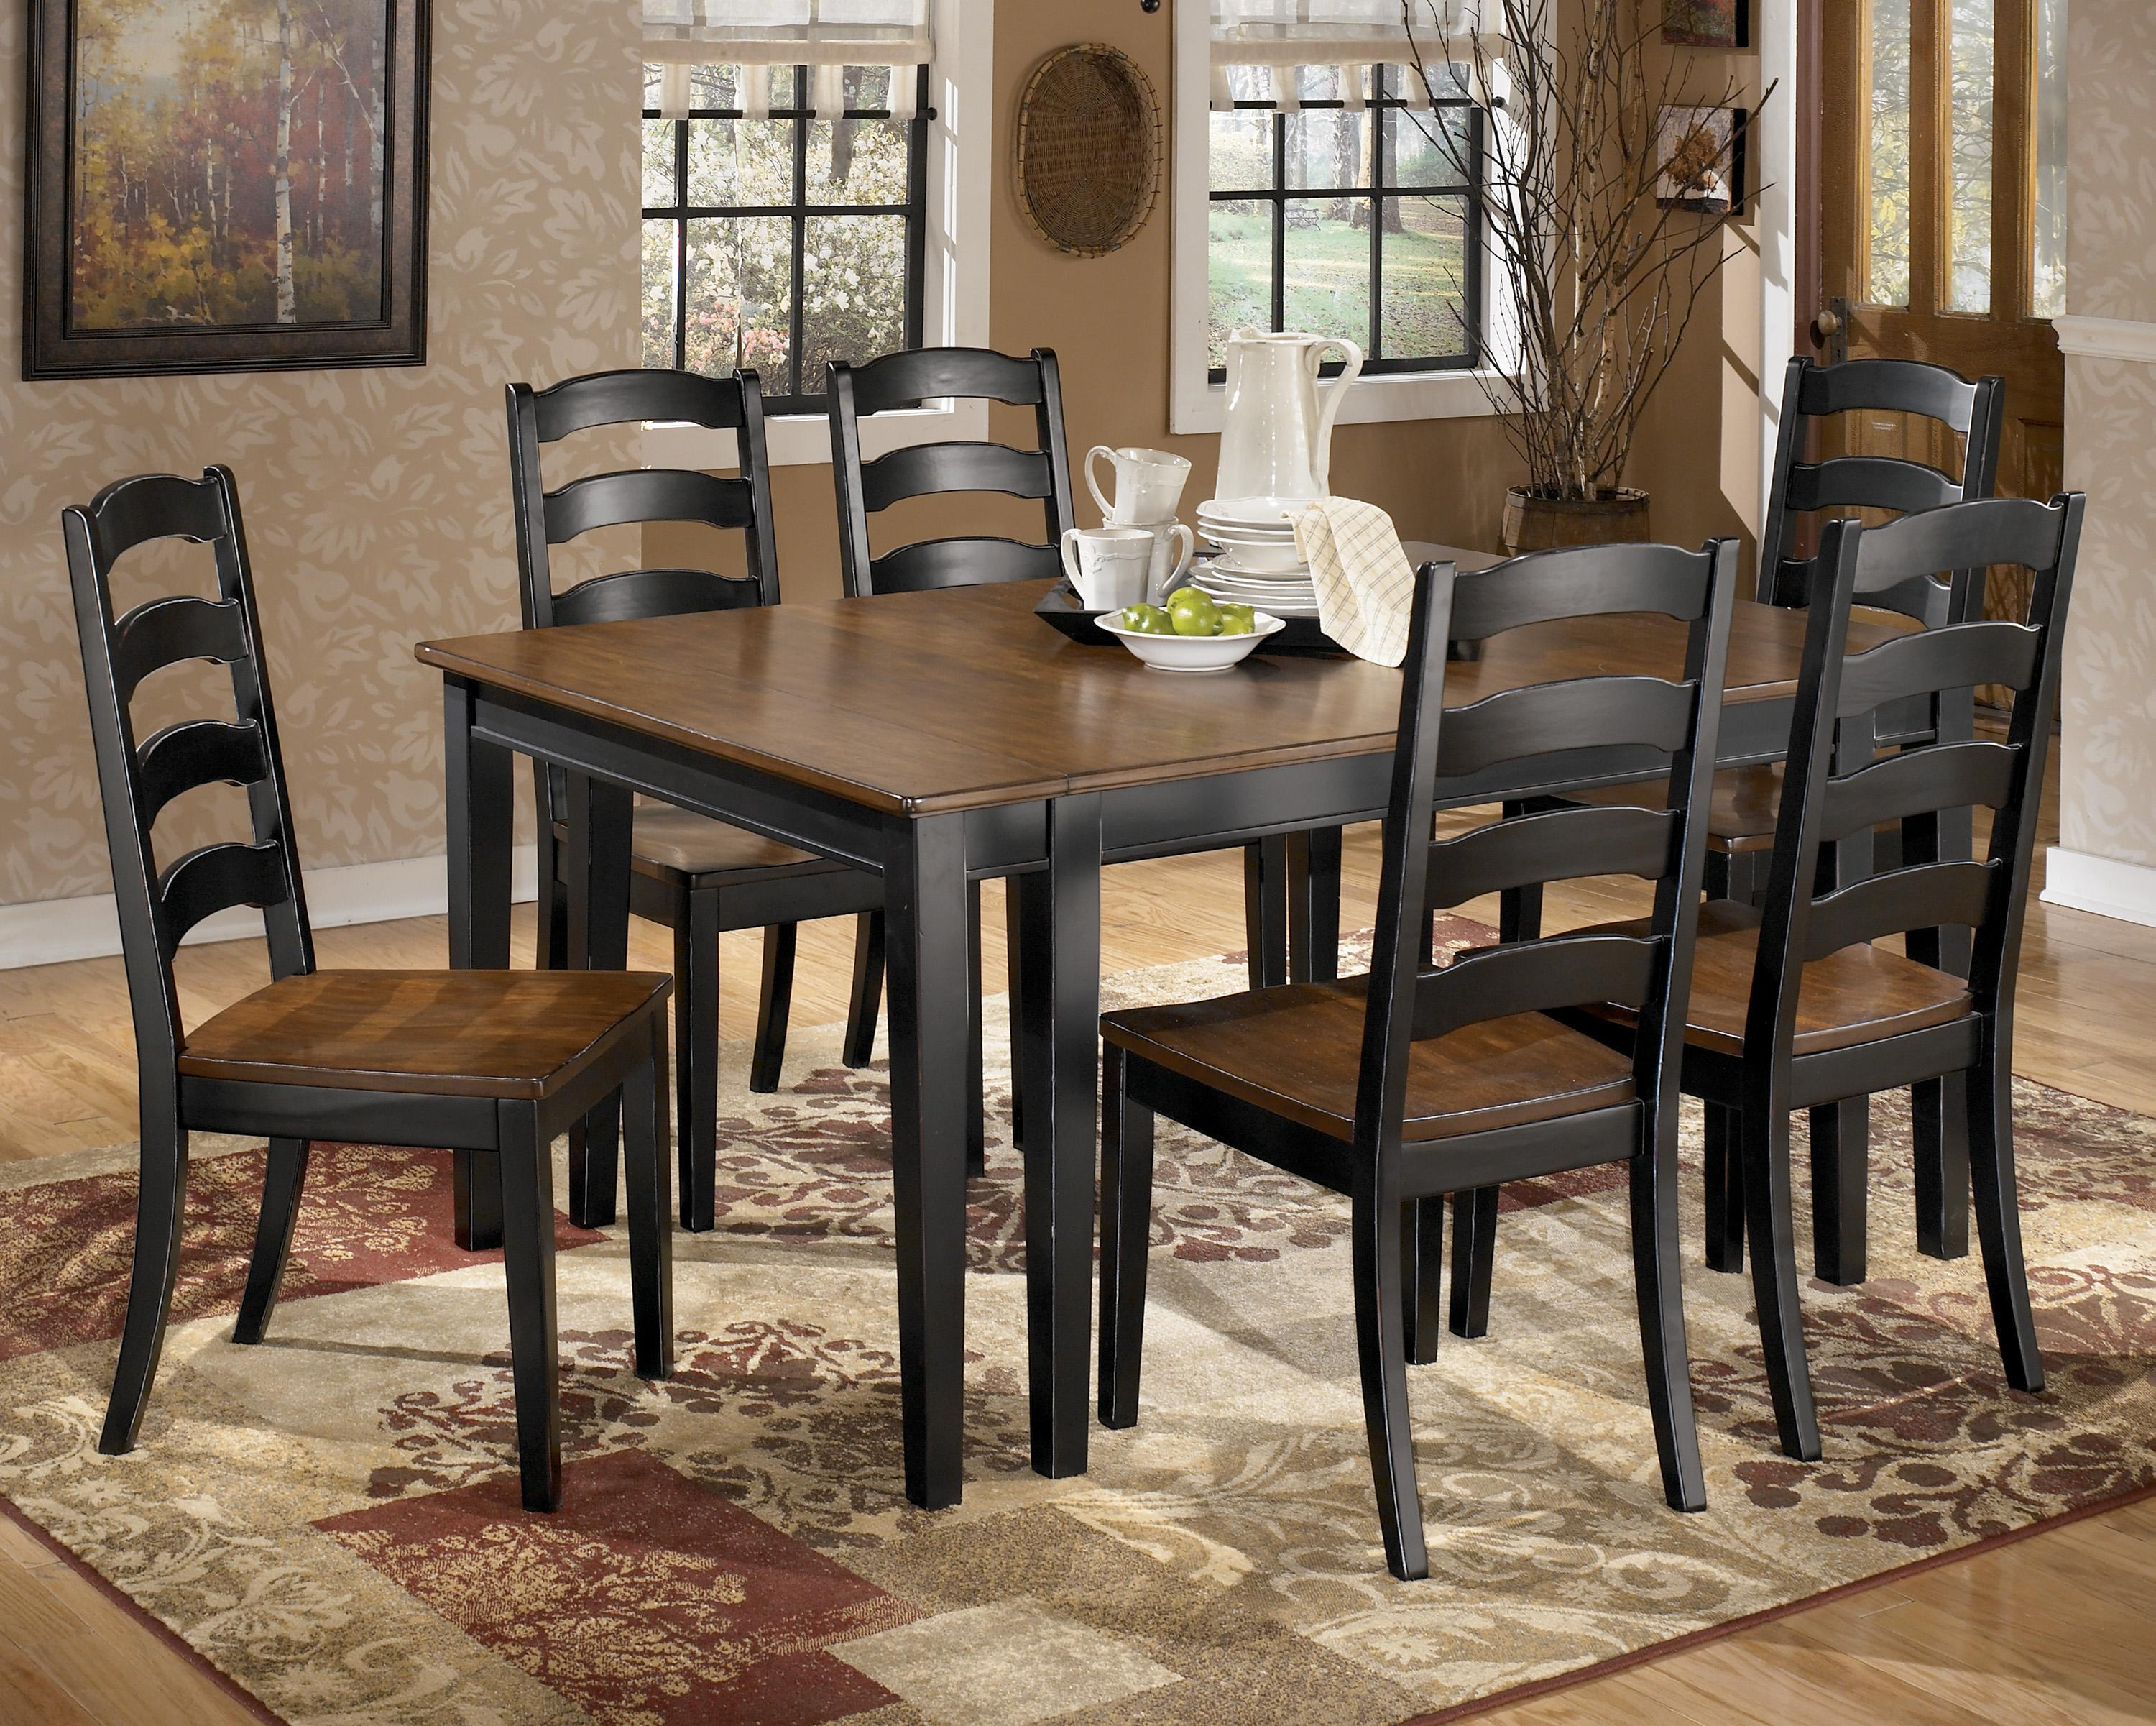 Dining room sets target homesfeed for Dinette furniture